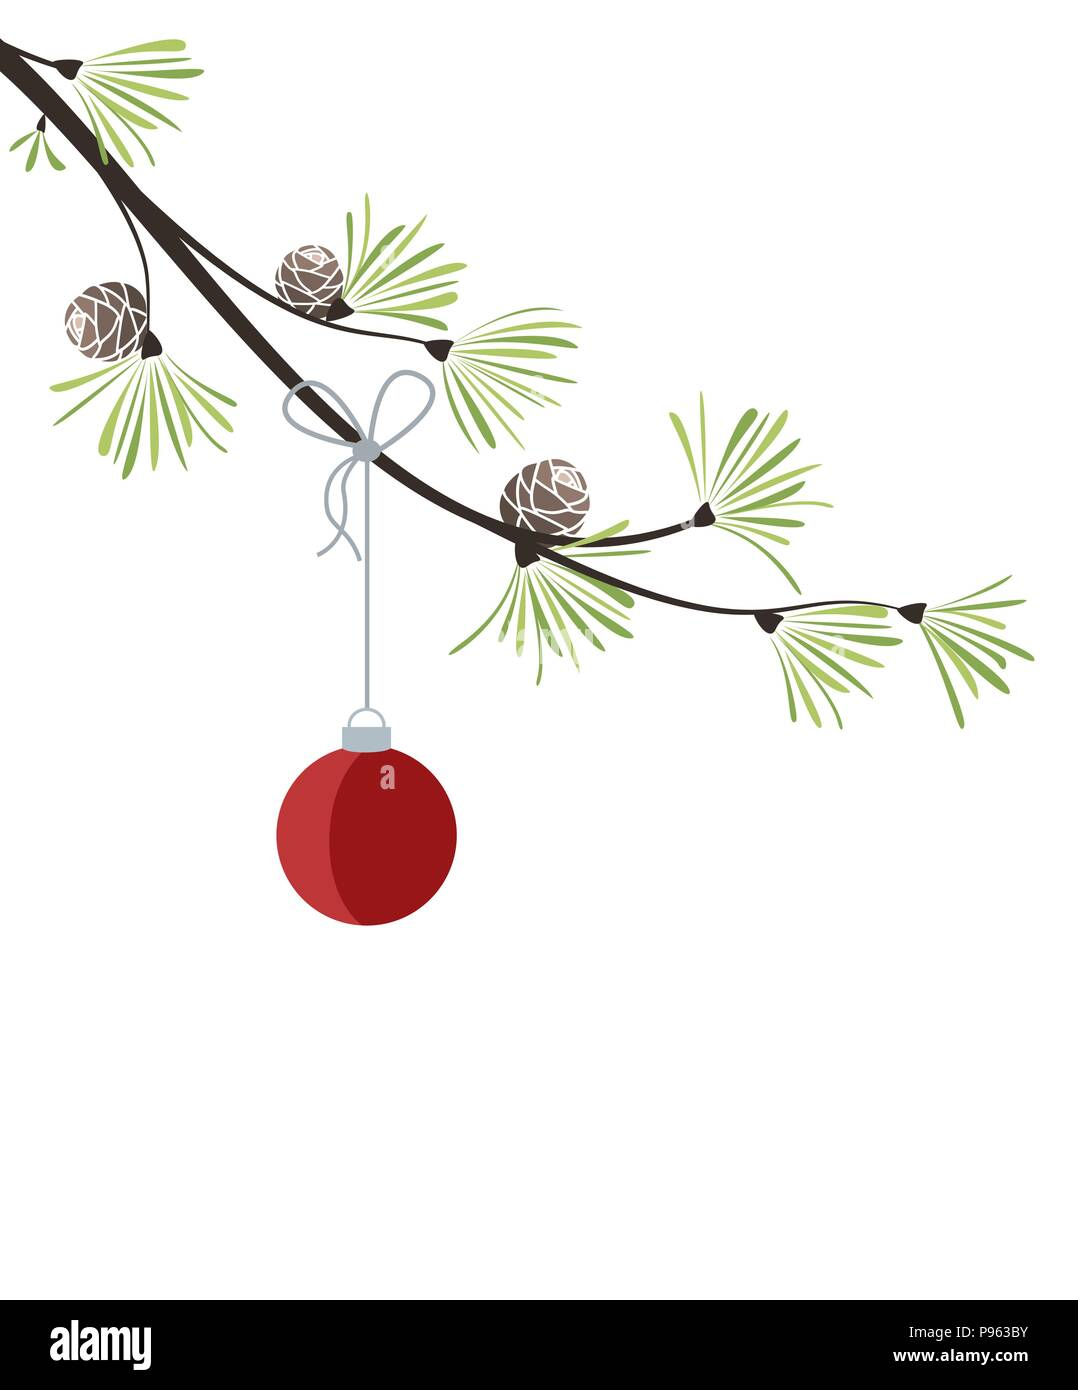 Vector Illustration Of Christmas Decorations With Branches